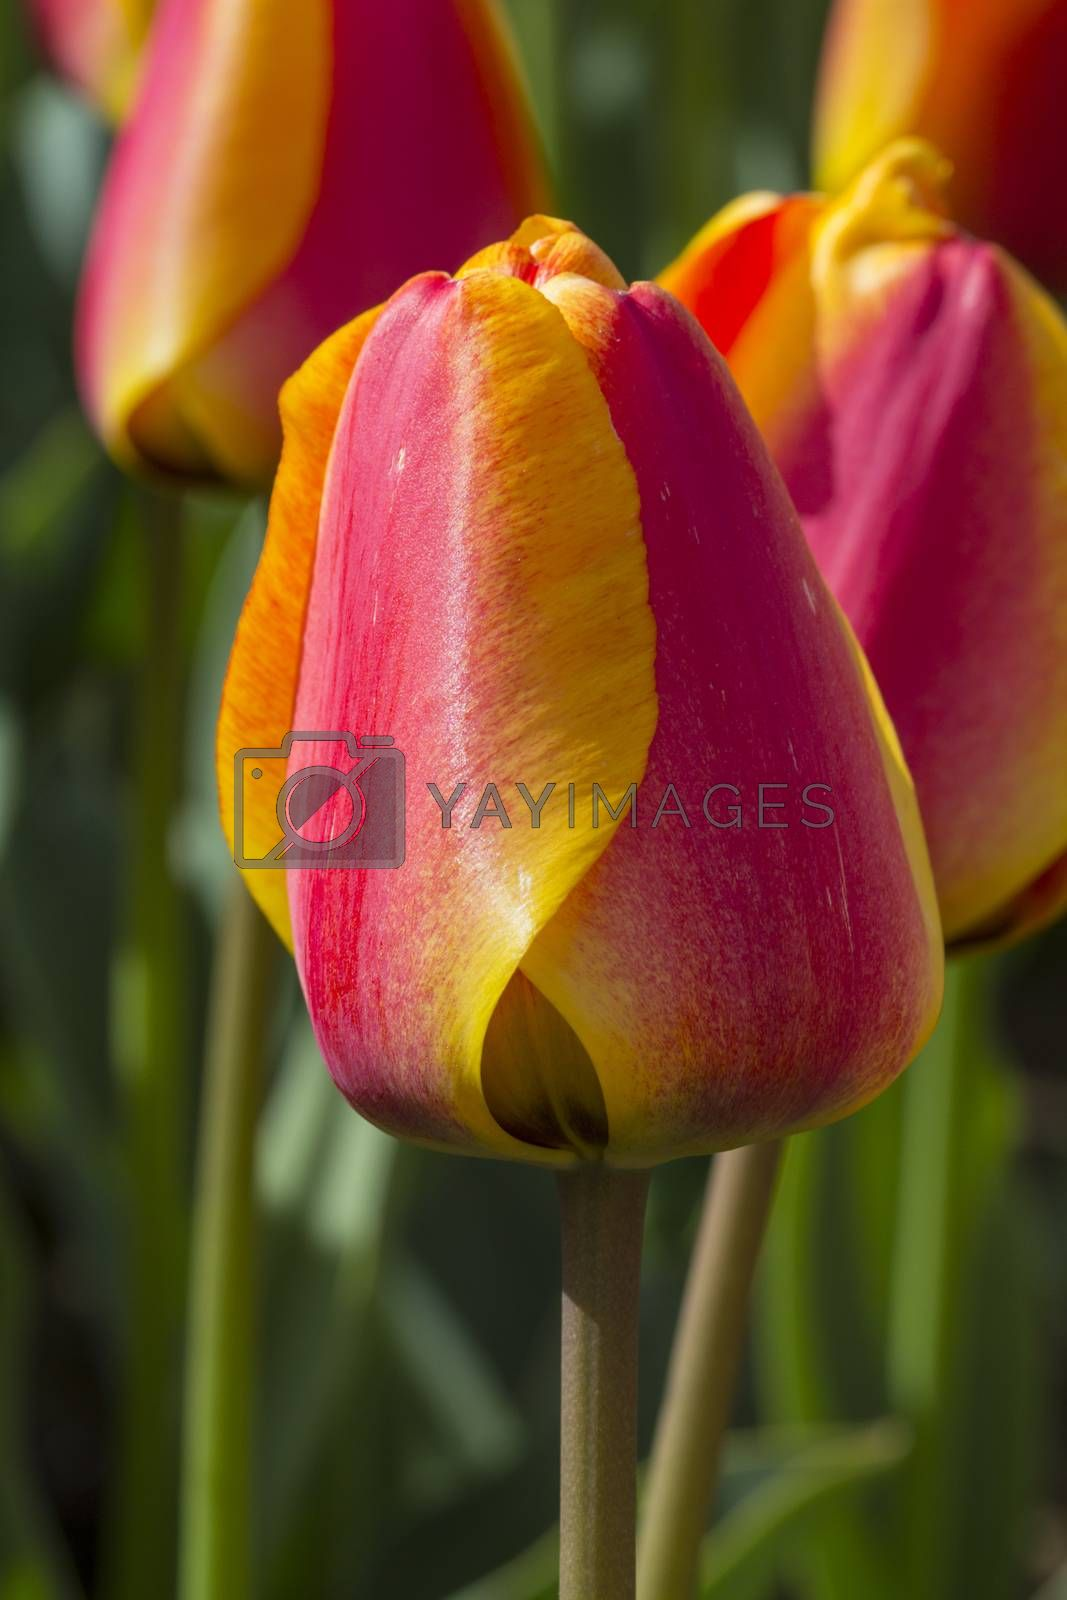 Beautiful tulips in a park on a sunny spring day.